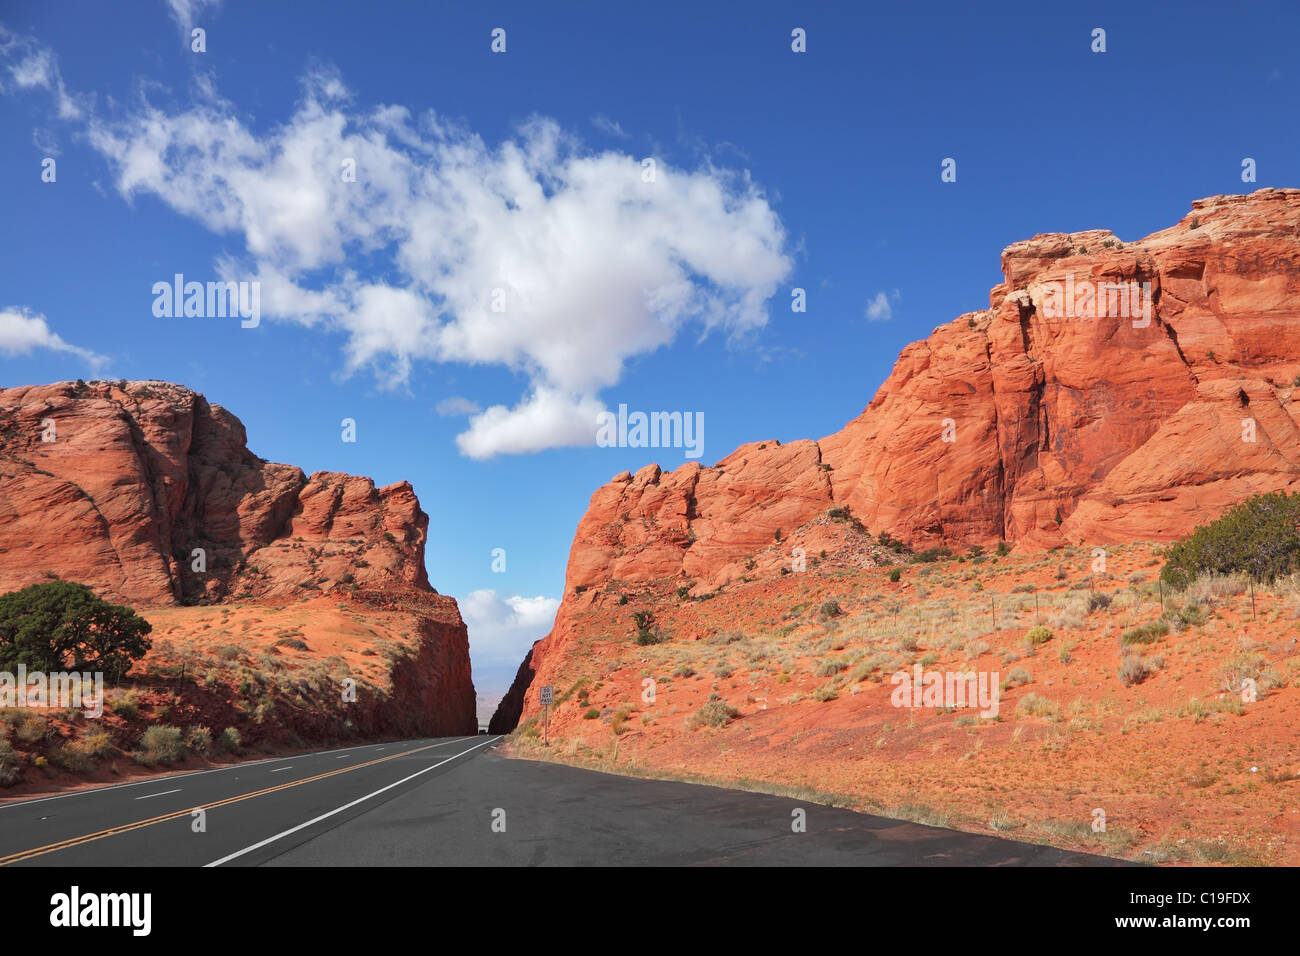 Magnificent American road - Stock Image